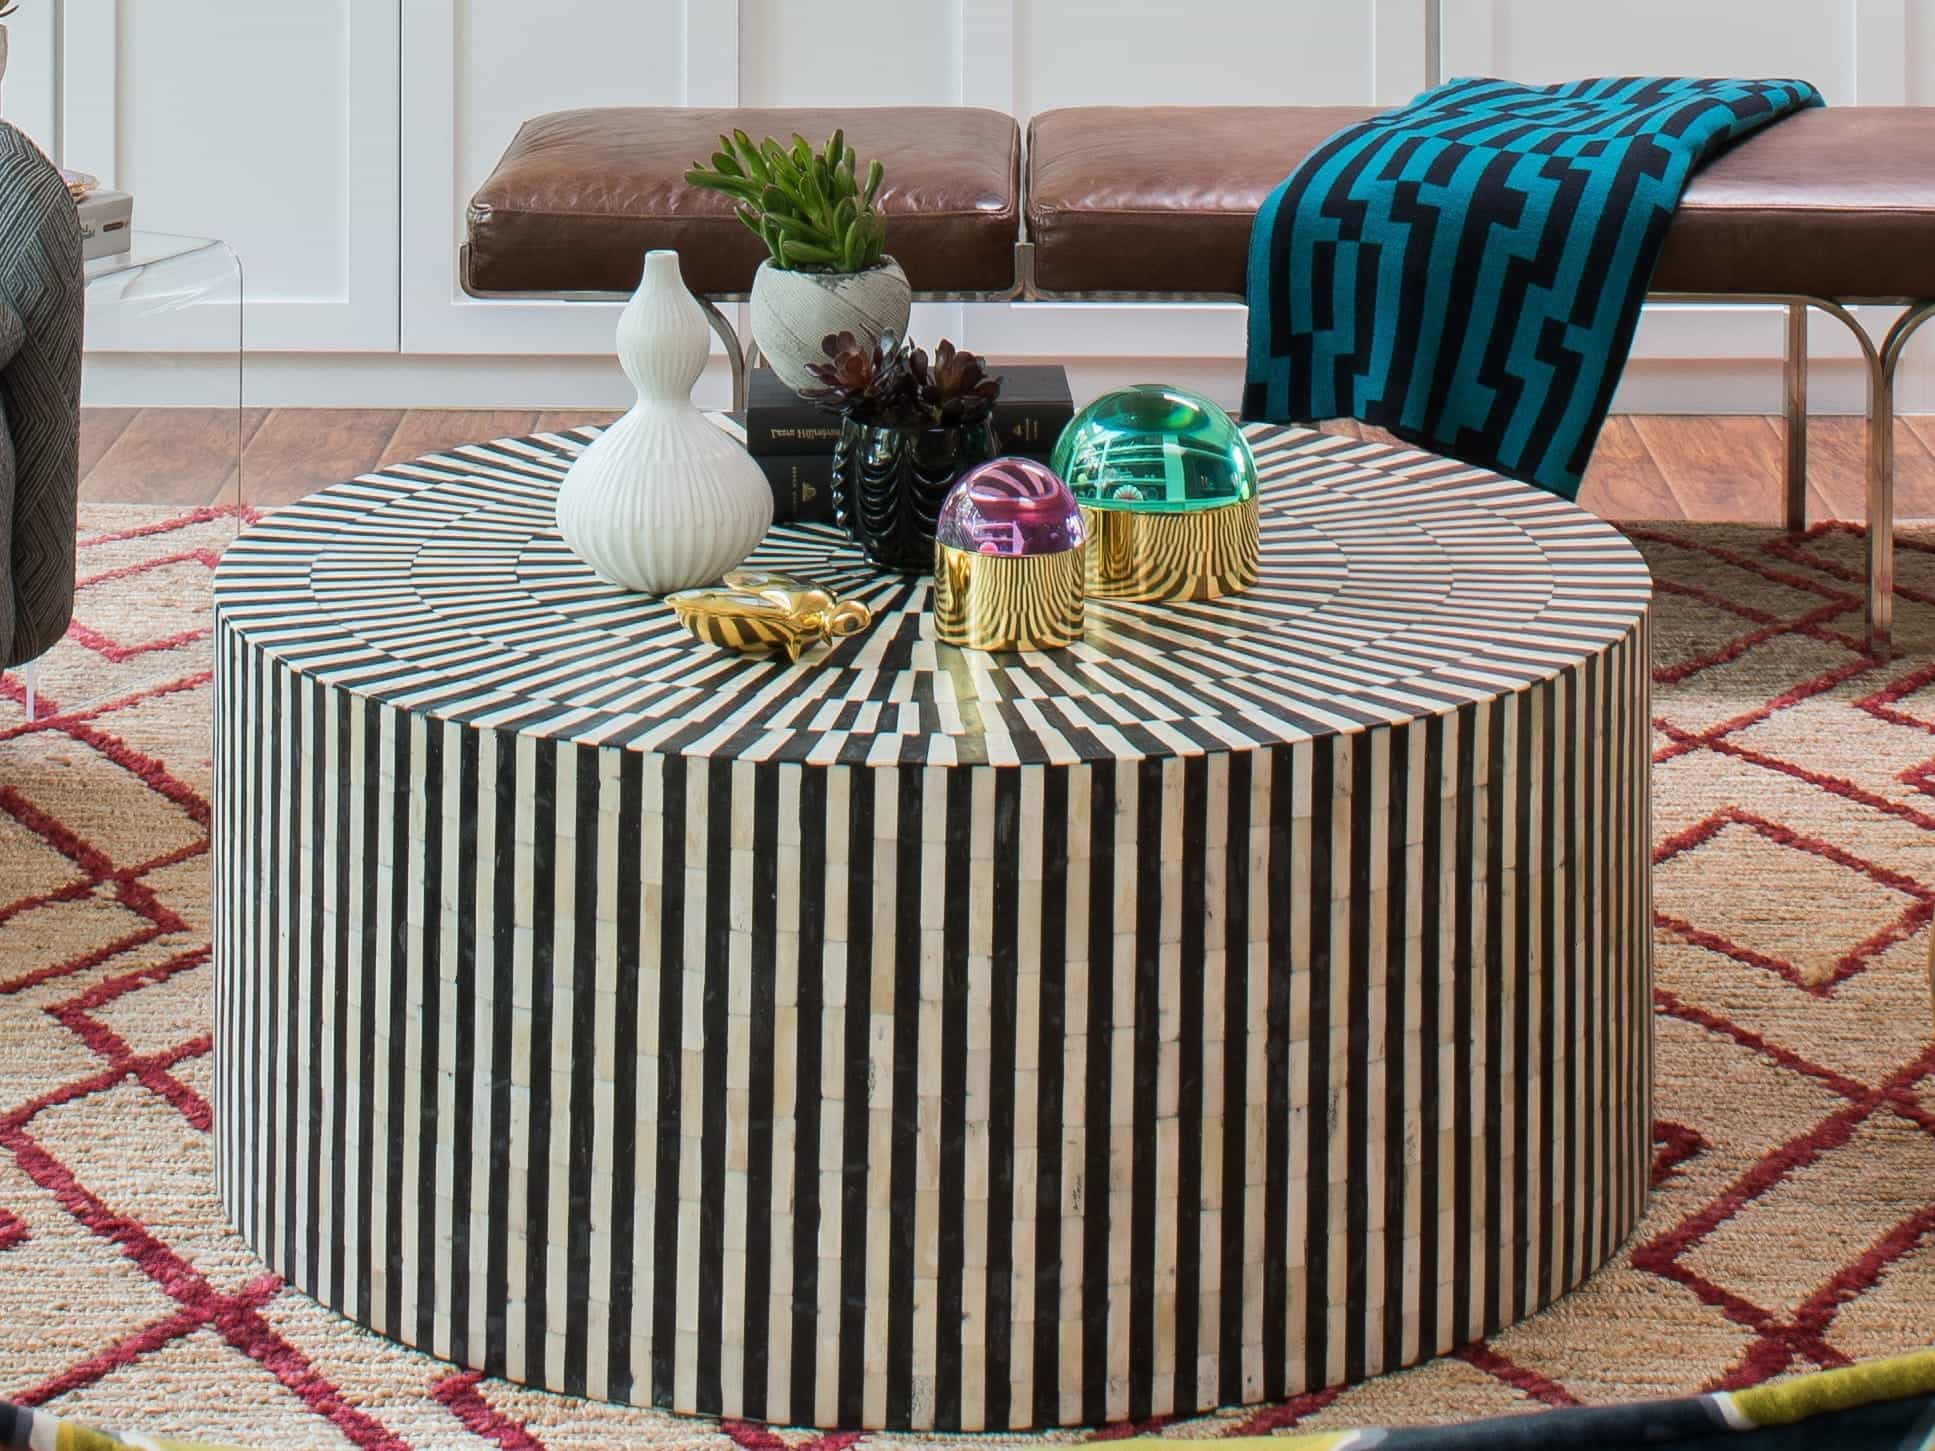 Black And White Patterned Round Coffee Table For Lost Creek Living Room (Image 6 of 32)